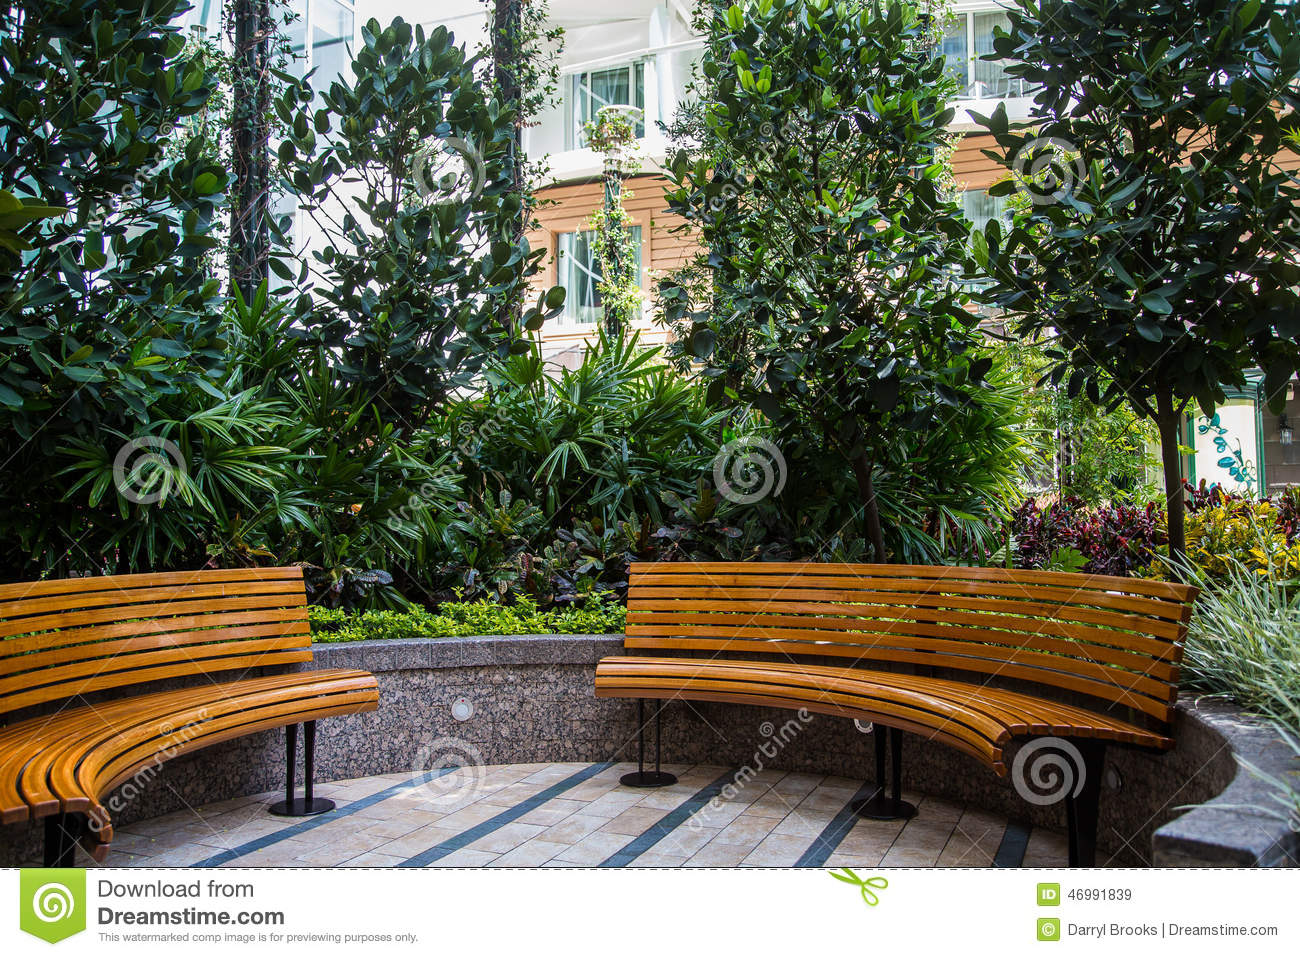 Curved Wood Benches In Garden Stock Photo - Image: 46991839